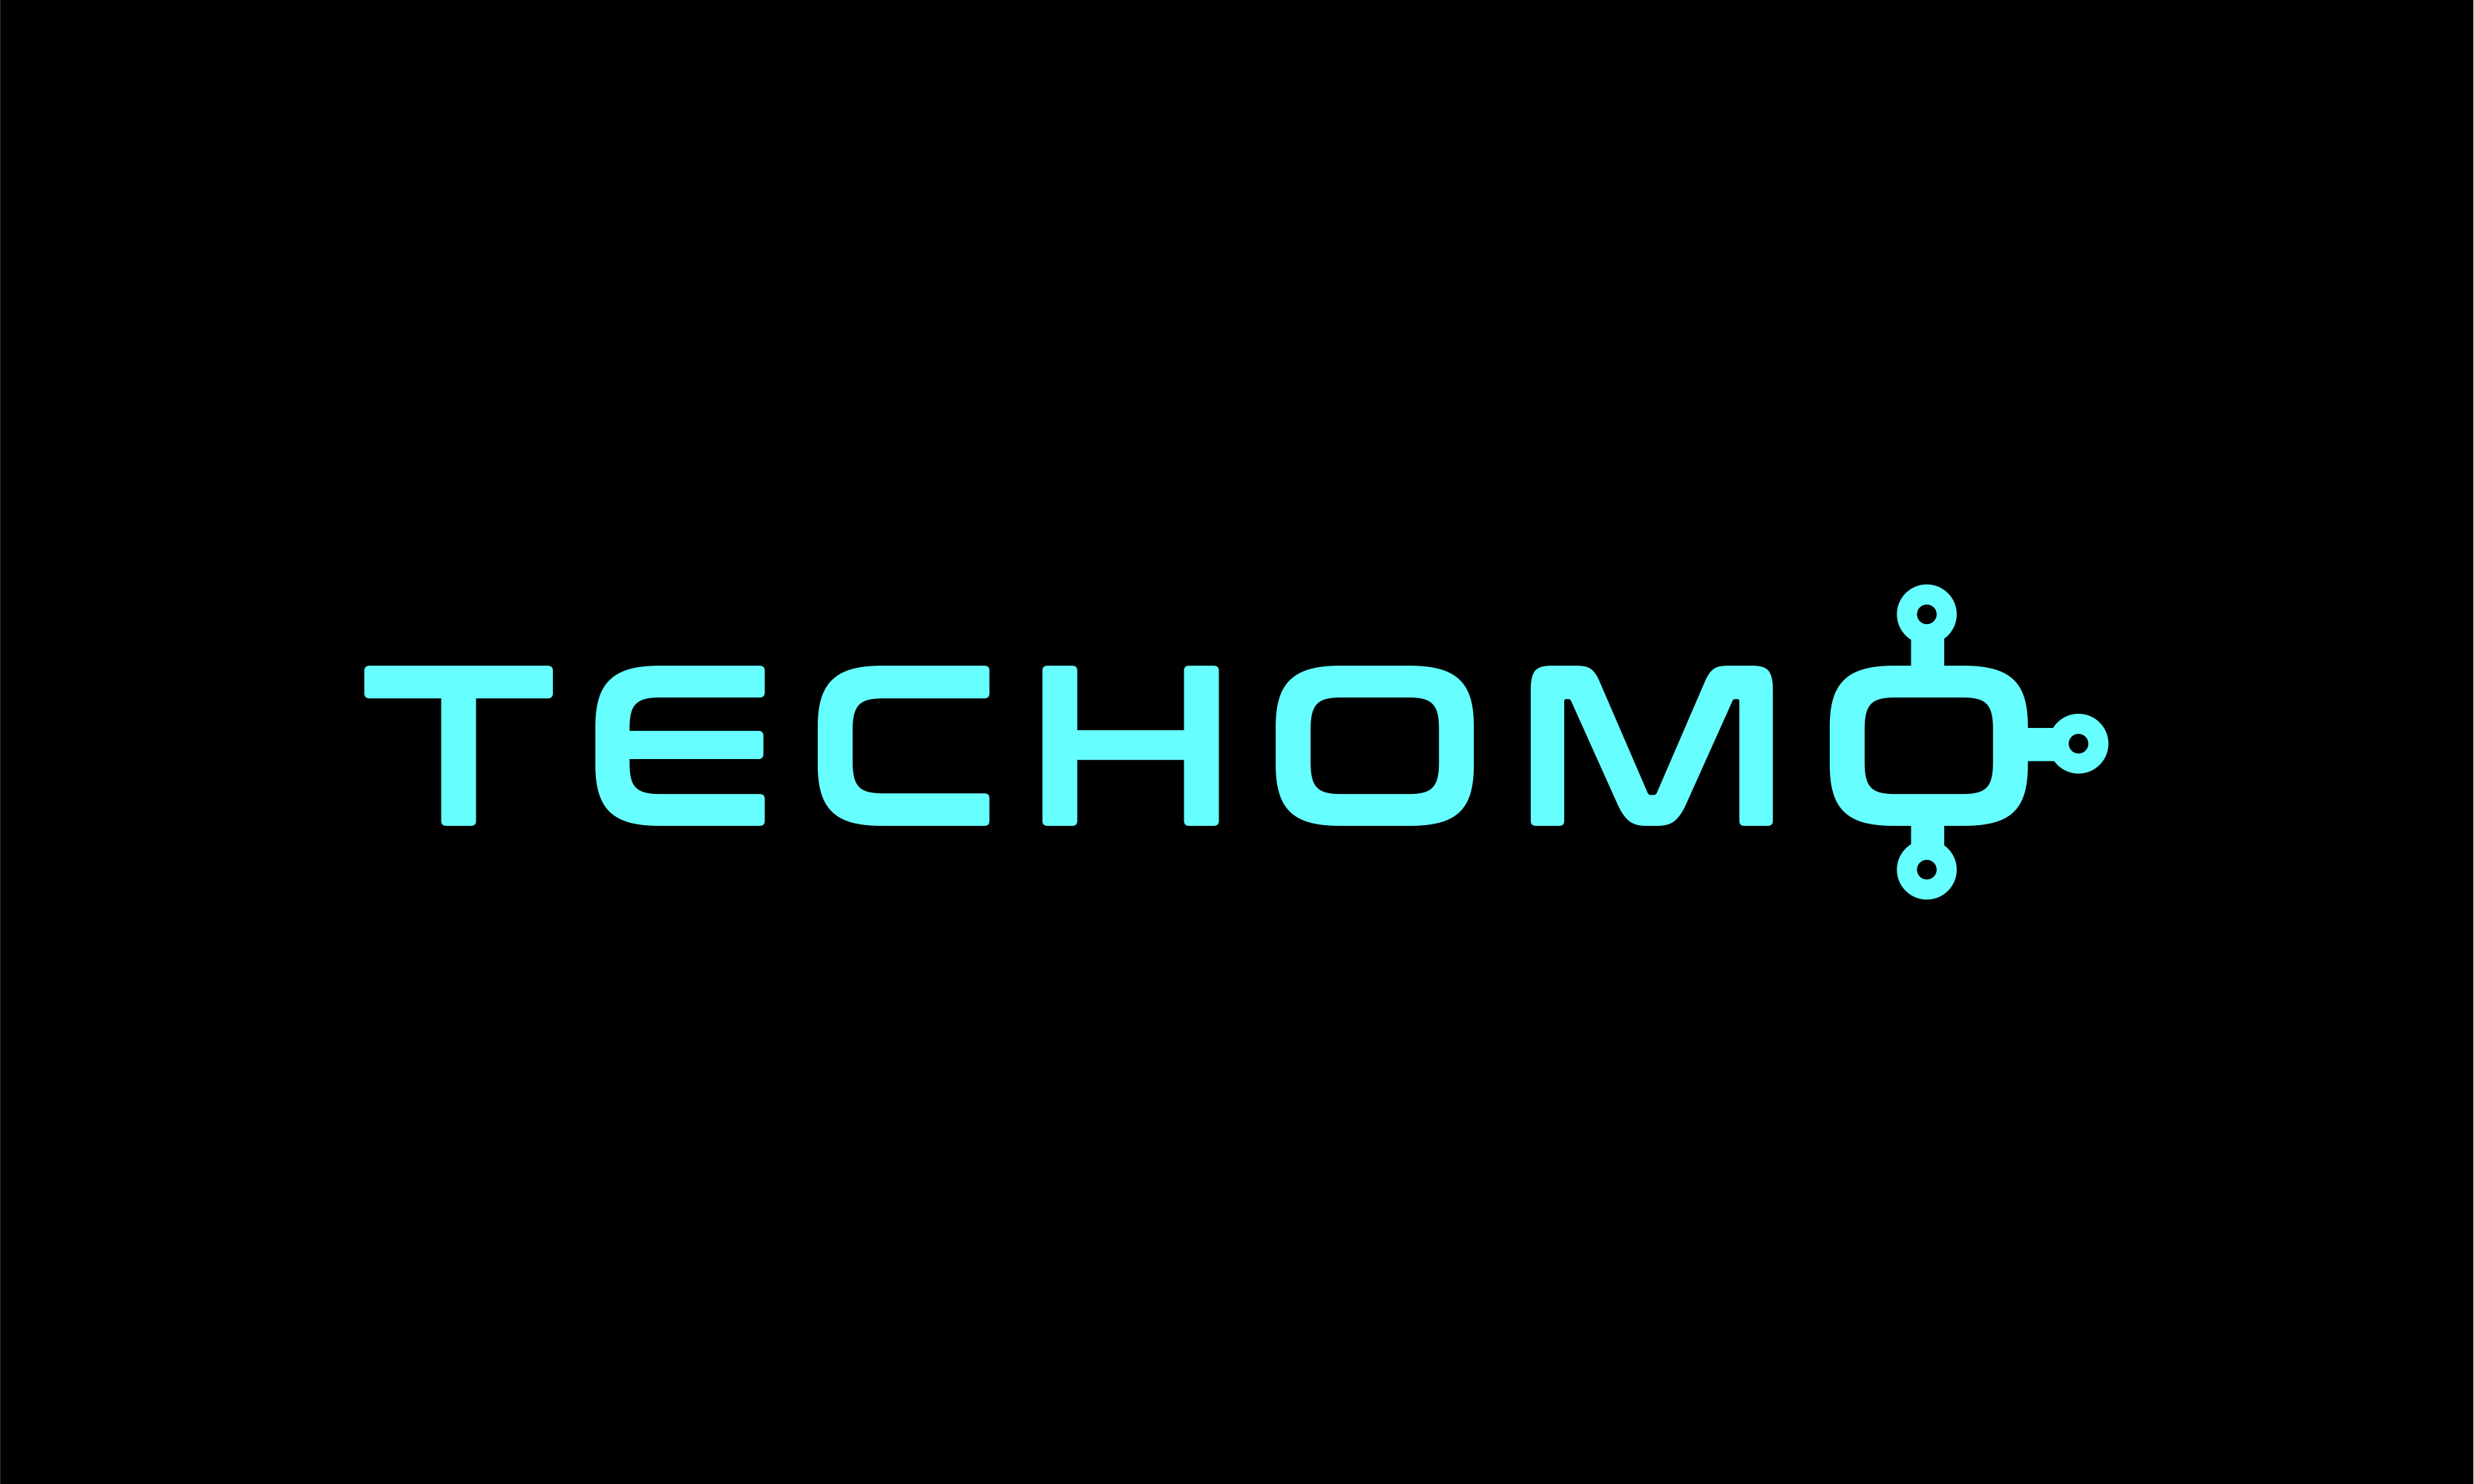 Techomo - Potential brand name for sale